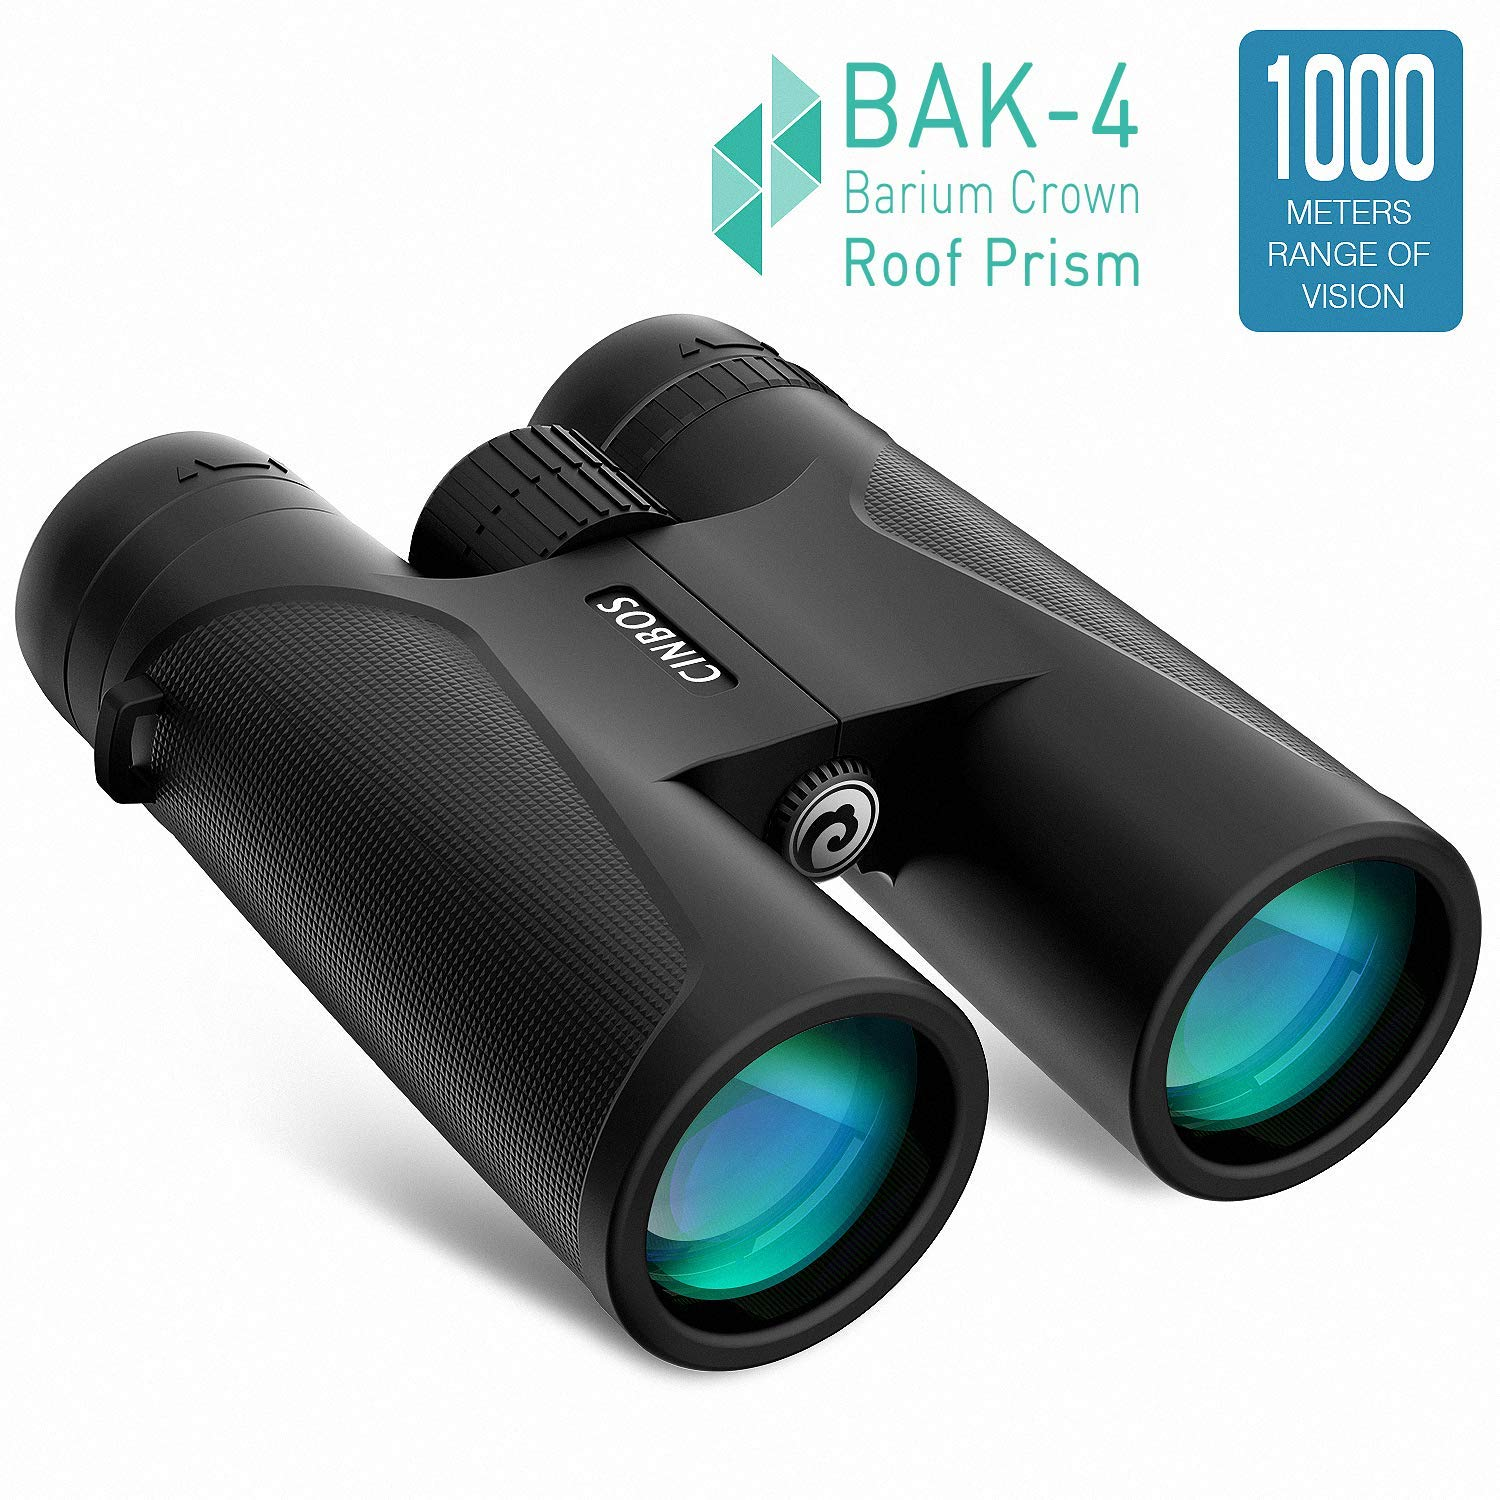 VEMTONA 12×42 Binoculars for Adults, Compact HD Professional Binoculars for Hunting, Concert Travel Bird Watching Sports Traveling, BAK4 FMC Lens with Carrying Bag and Neck Strap Standard